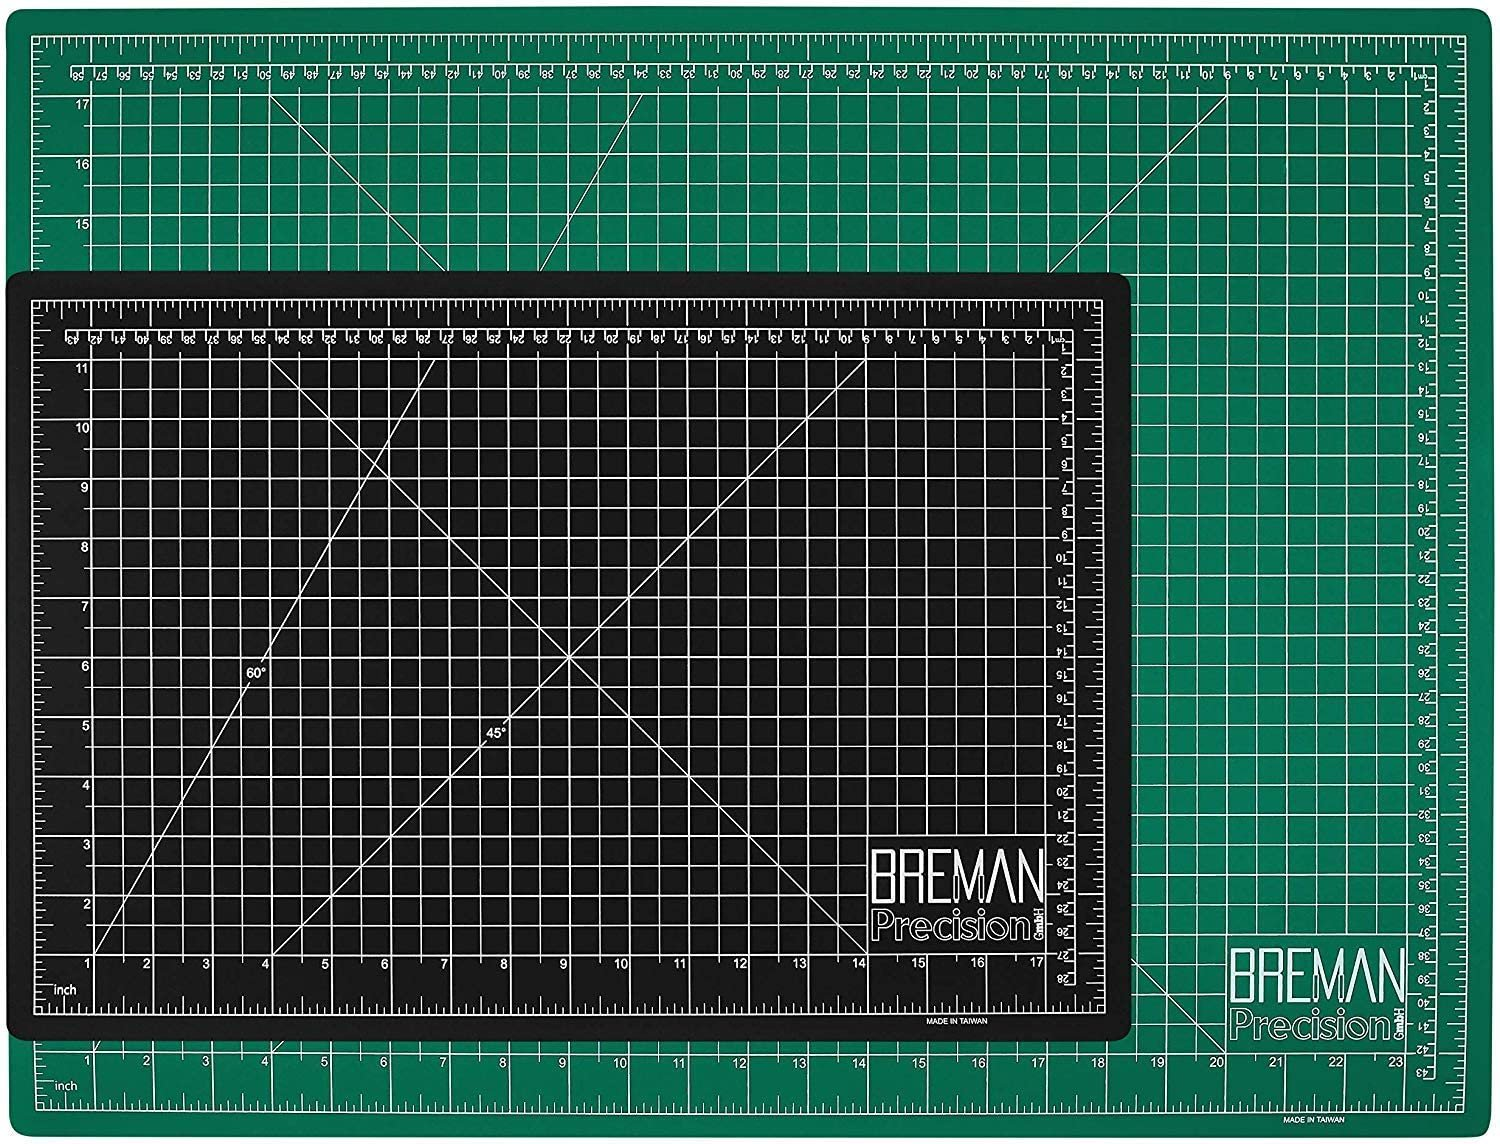 Breman Precision Self Healing Cutting Mat 5Ply Craft Mat with Grid 18x24in